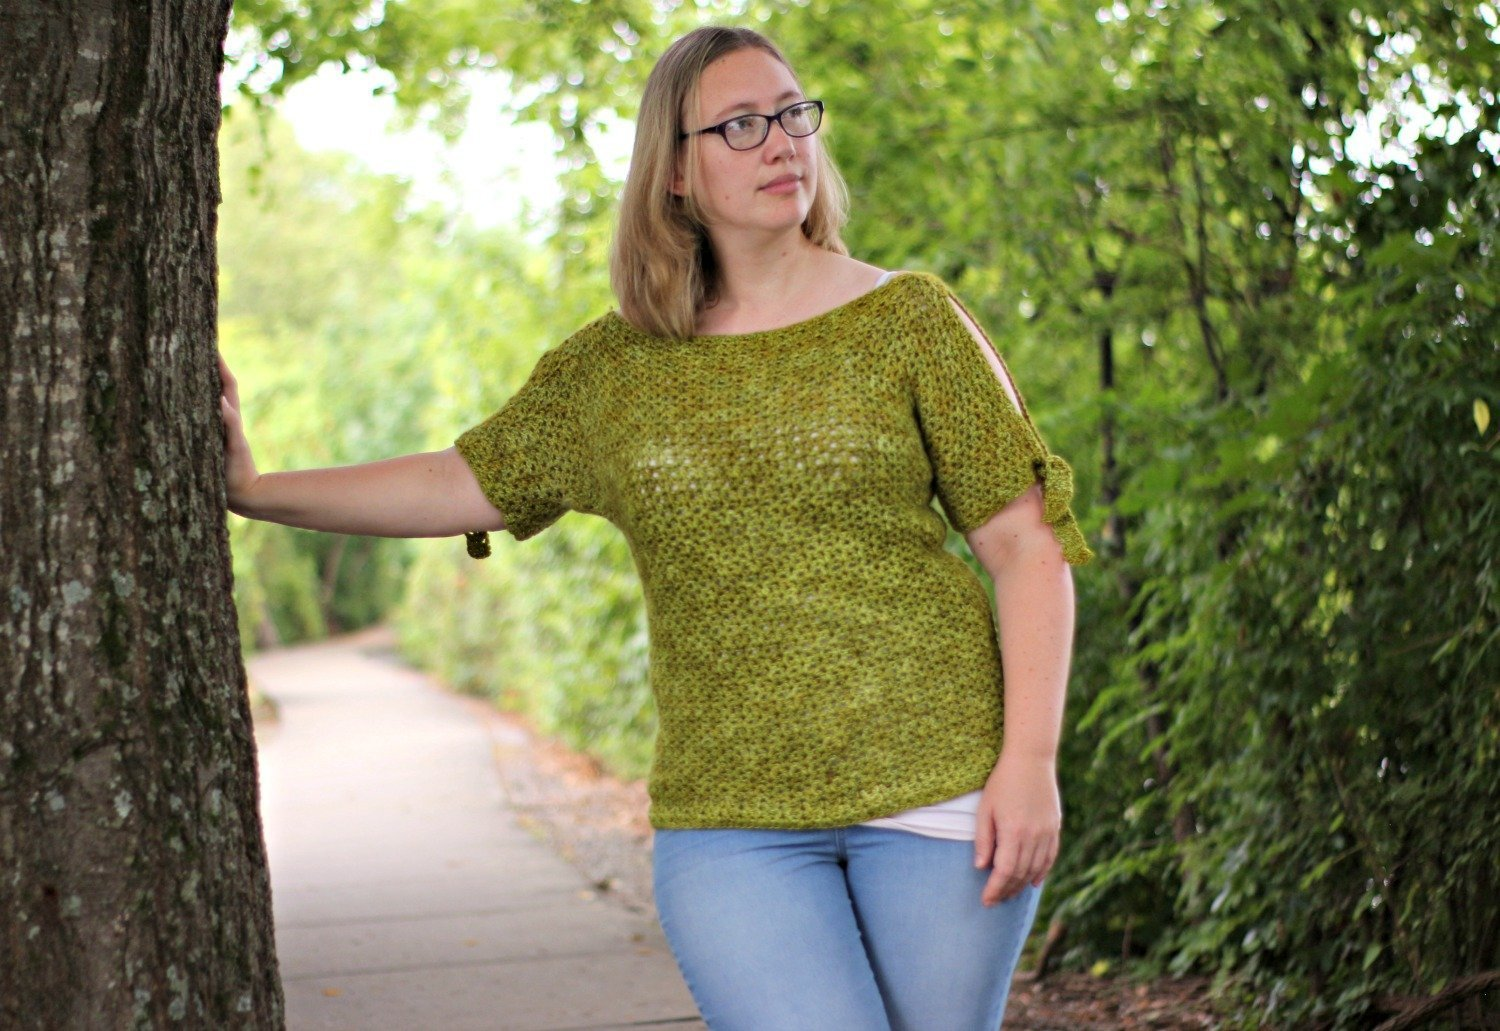 Use this free crochet pattern to crochet the tie sleeve tee - a warm weather top using only dc and chains!